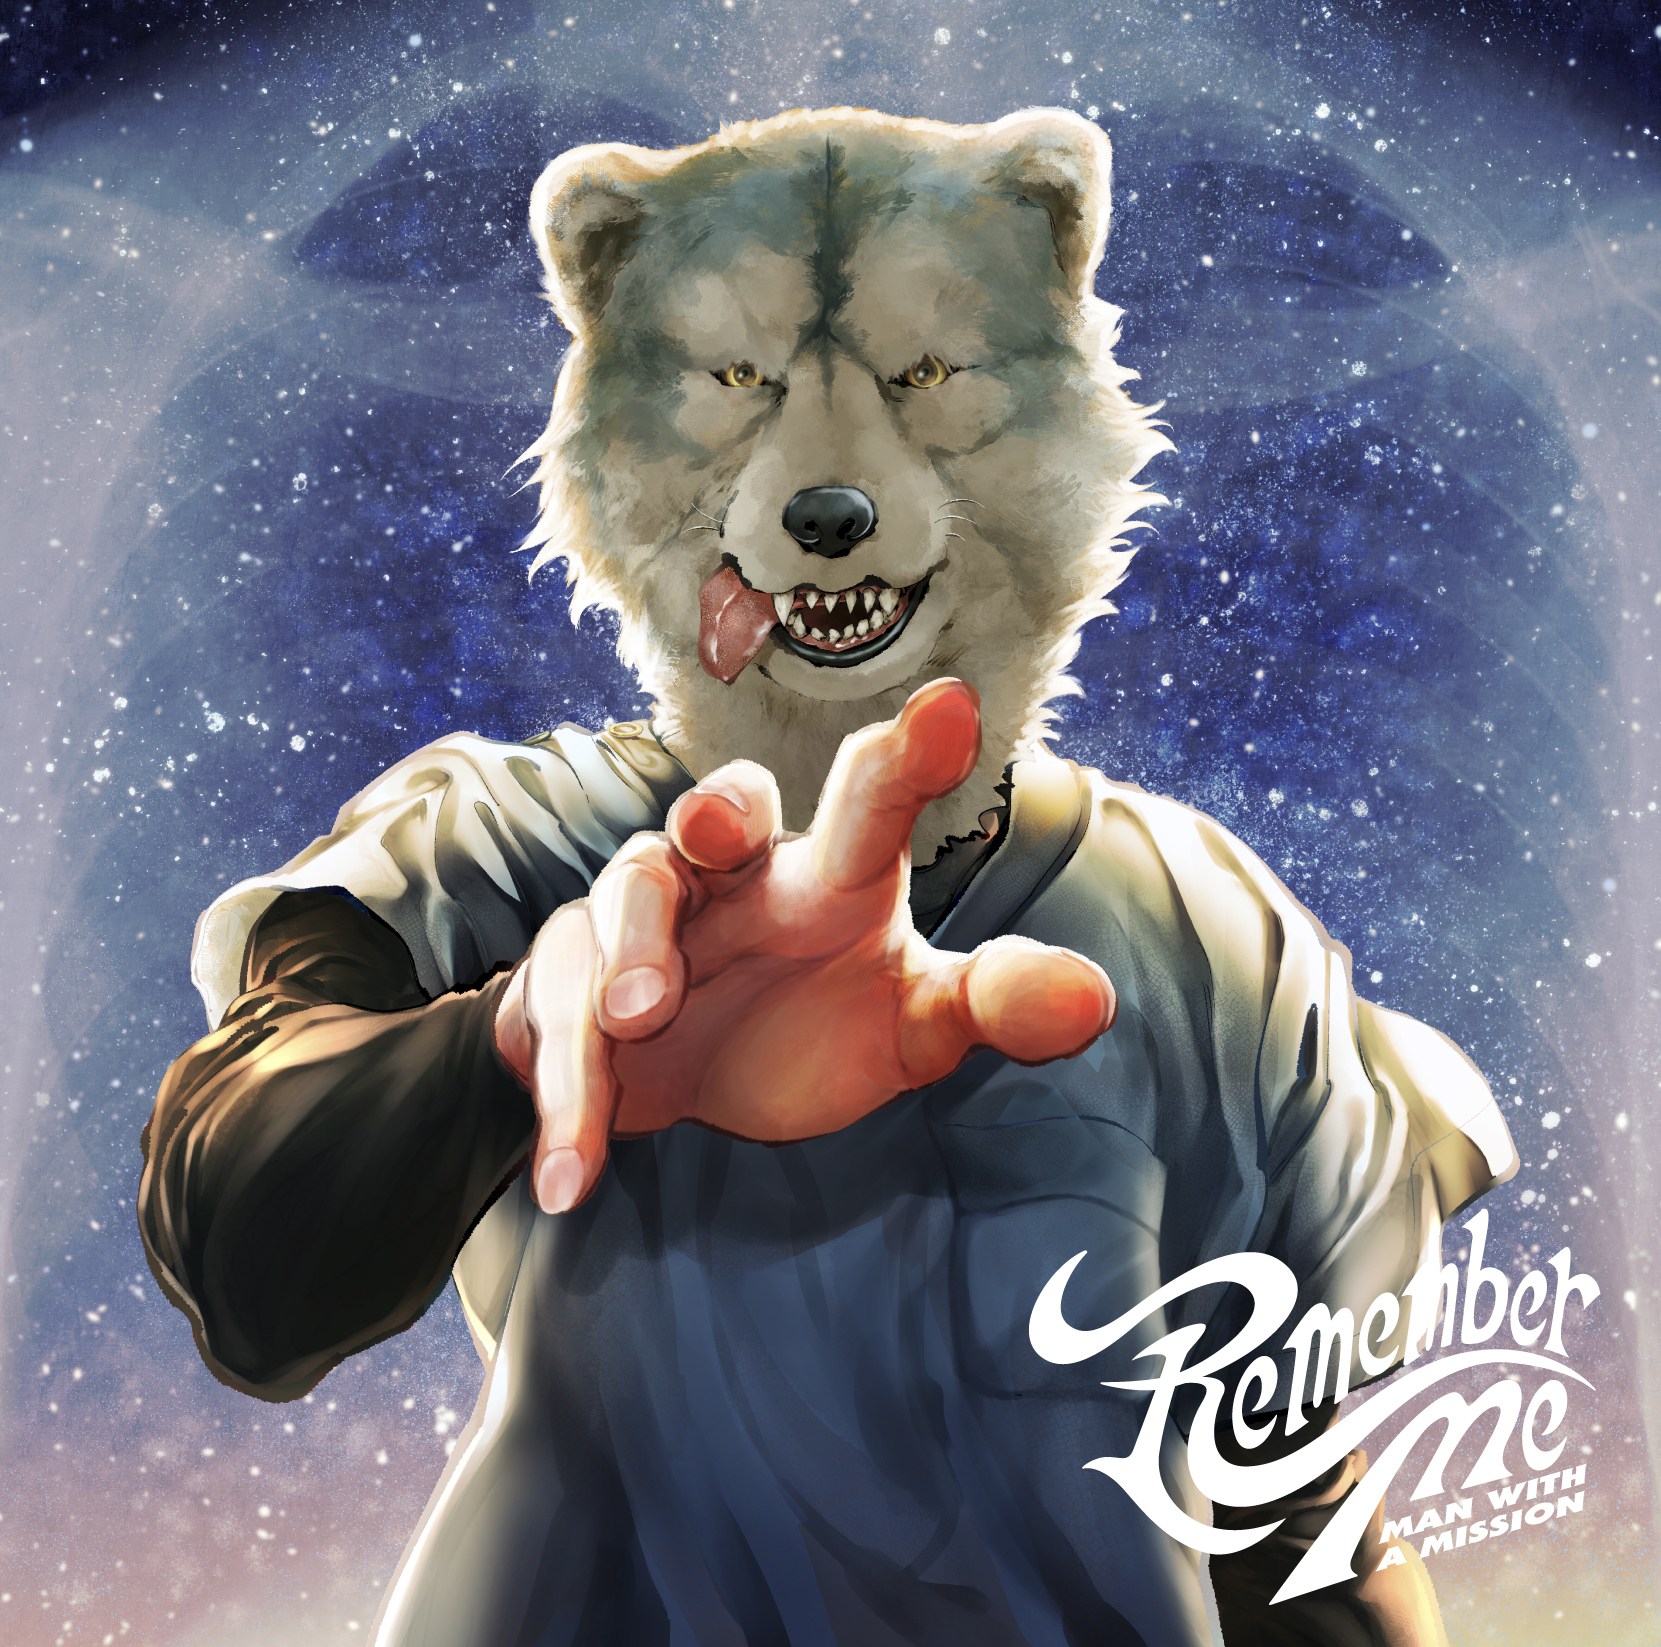 6 5 Wed Release Remember Me 特設サイト Man With A Mission